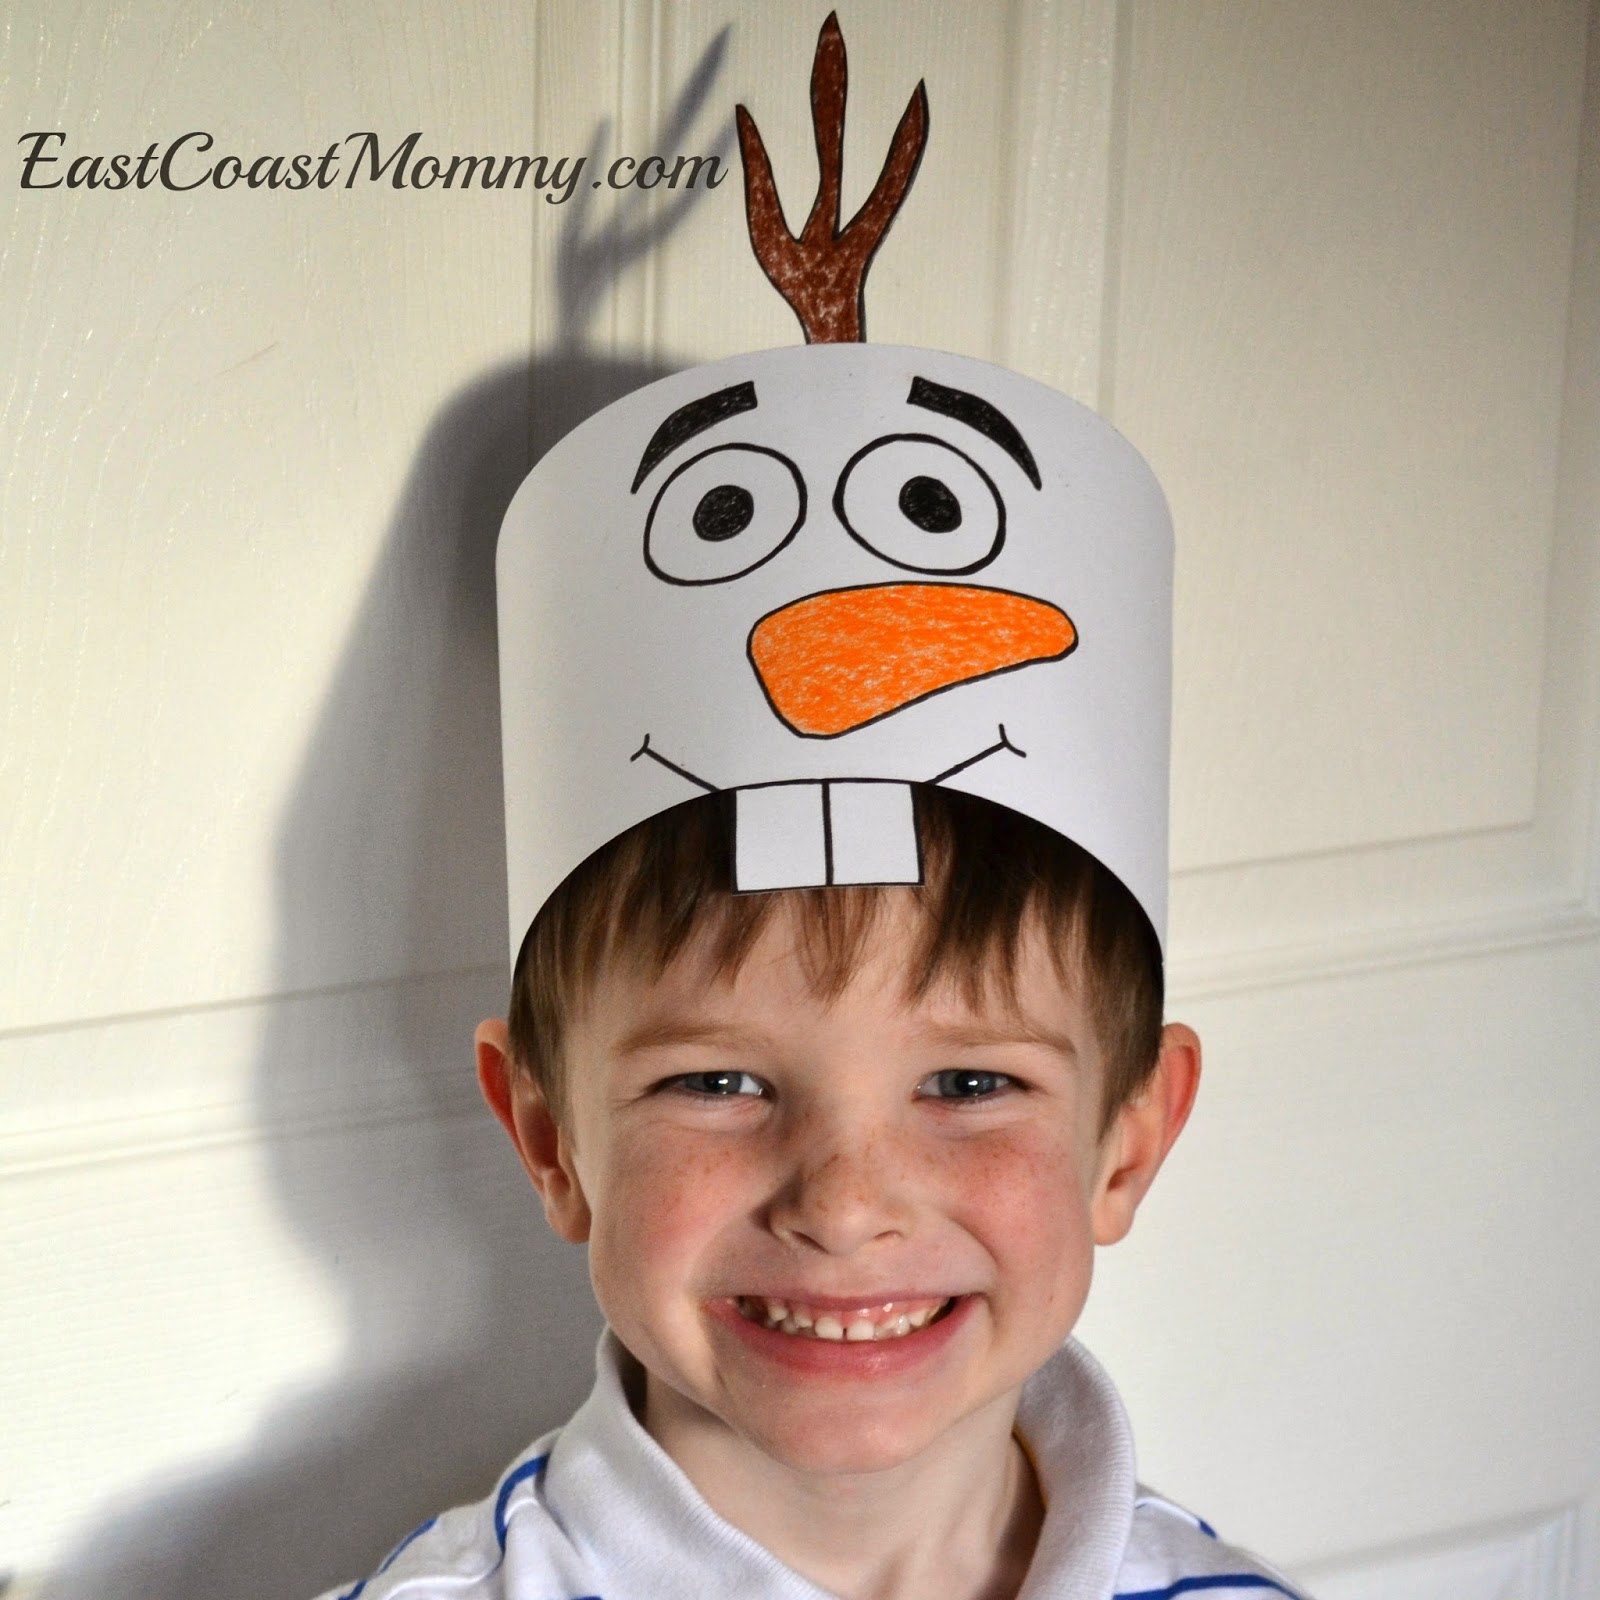 East coast mommy diy olaf costume and if you are looking for an even easier option i designed a cute paper olaf hat template that you can download here solutioingenieria Image collections